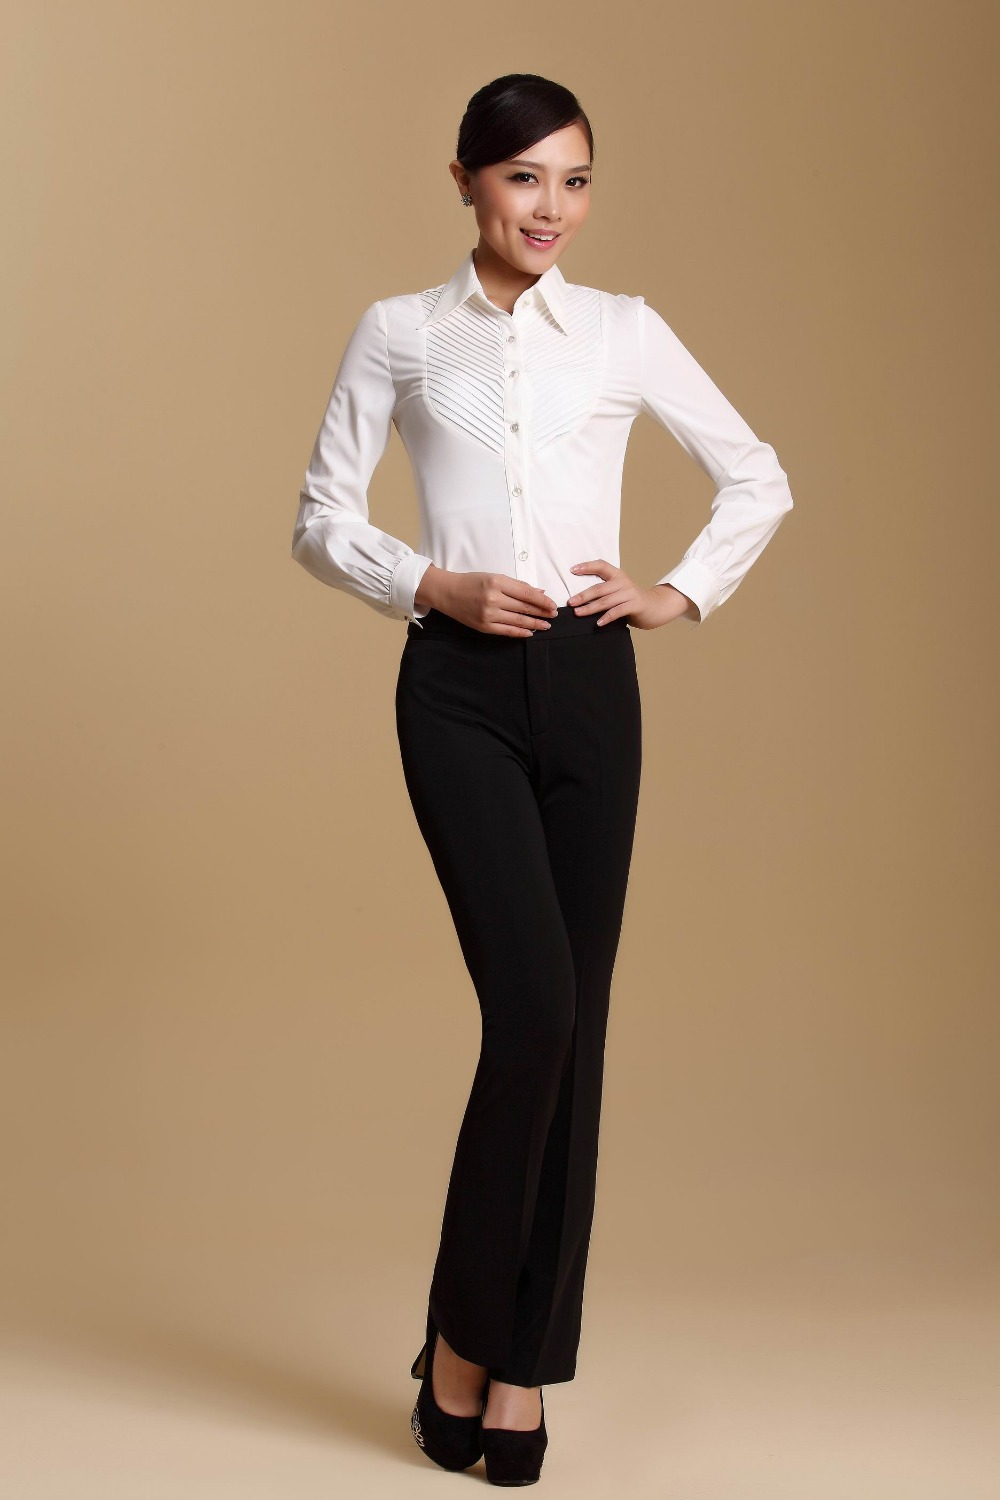 Wonderful I Almost Like The Pants  Woman  Professional  Profession  Passion  Dream  Goals  Office  Offices  Conference Rooms  Business Outfits  Networking  Tweed Jacket, Loafers, Fitted And Rolled Up Jeans, Skinny Belt, Button Down Shirt, Glasses